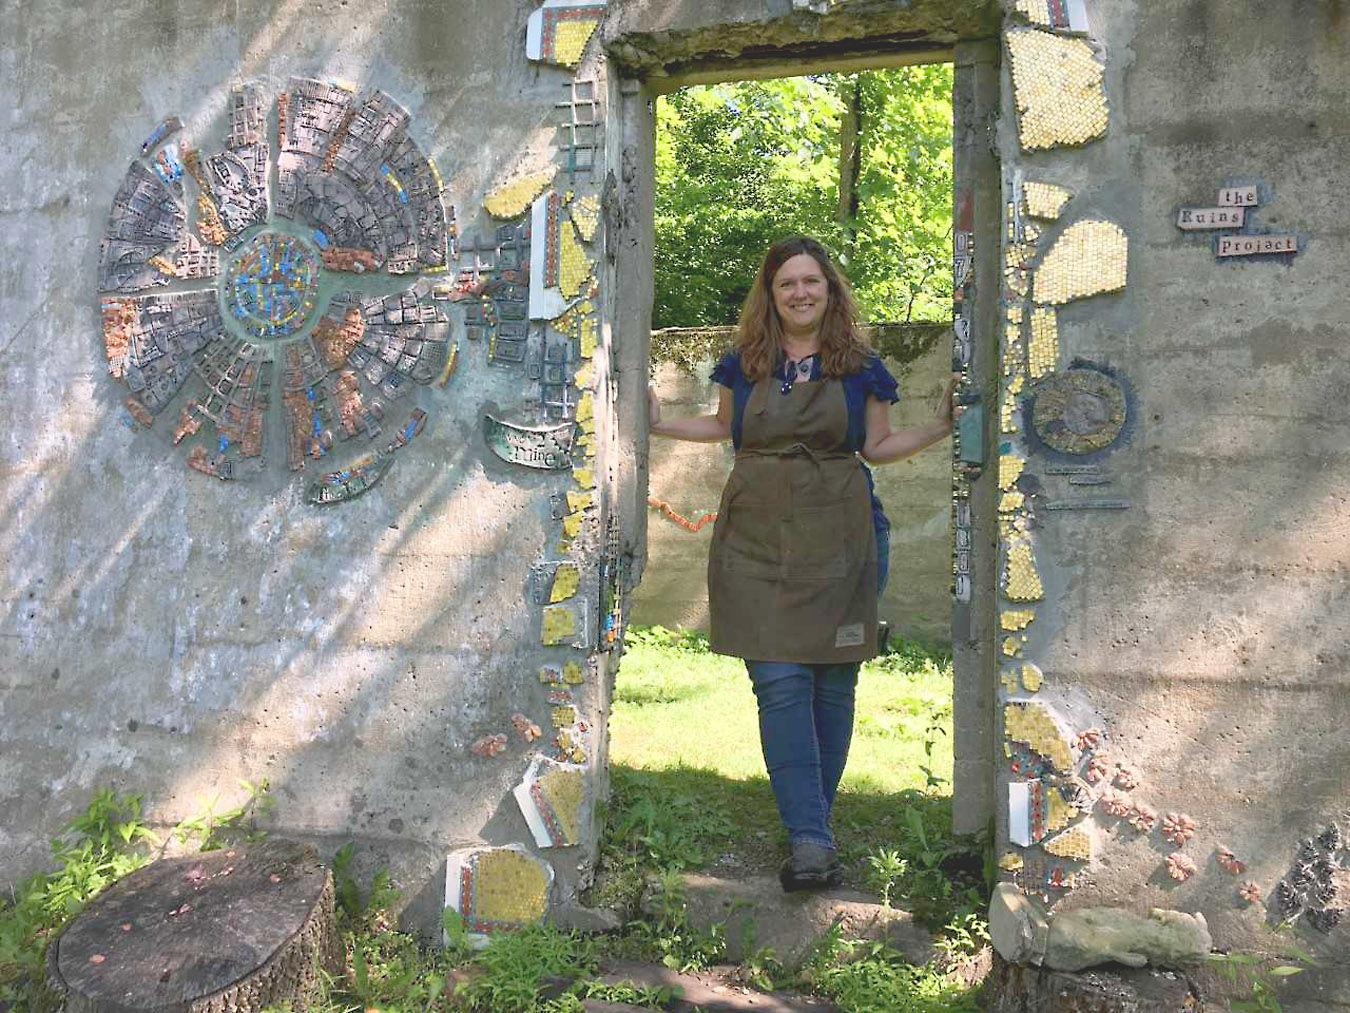 Rachel Sager and The Ruins Project